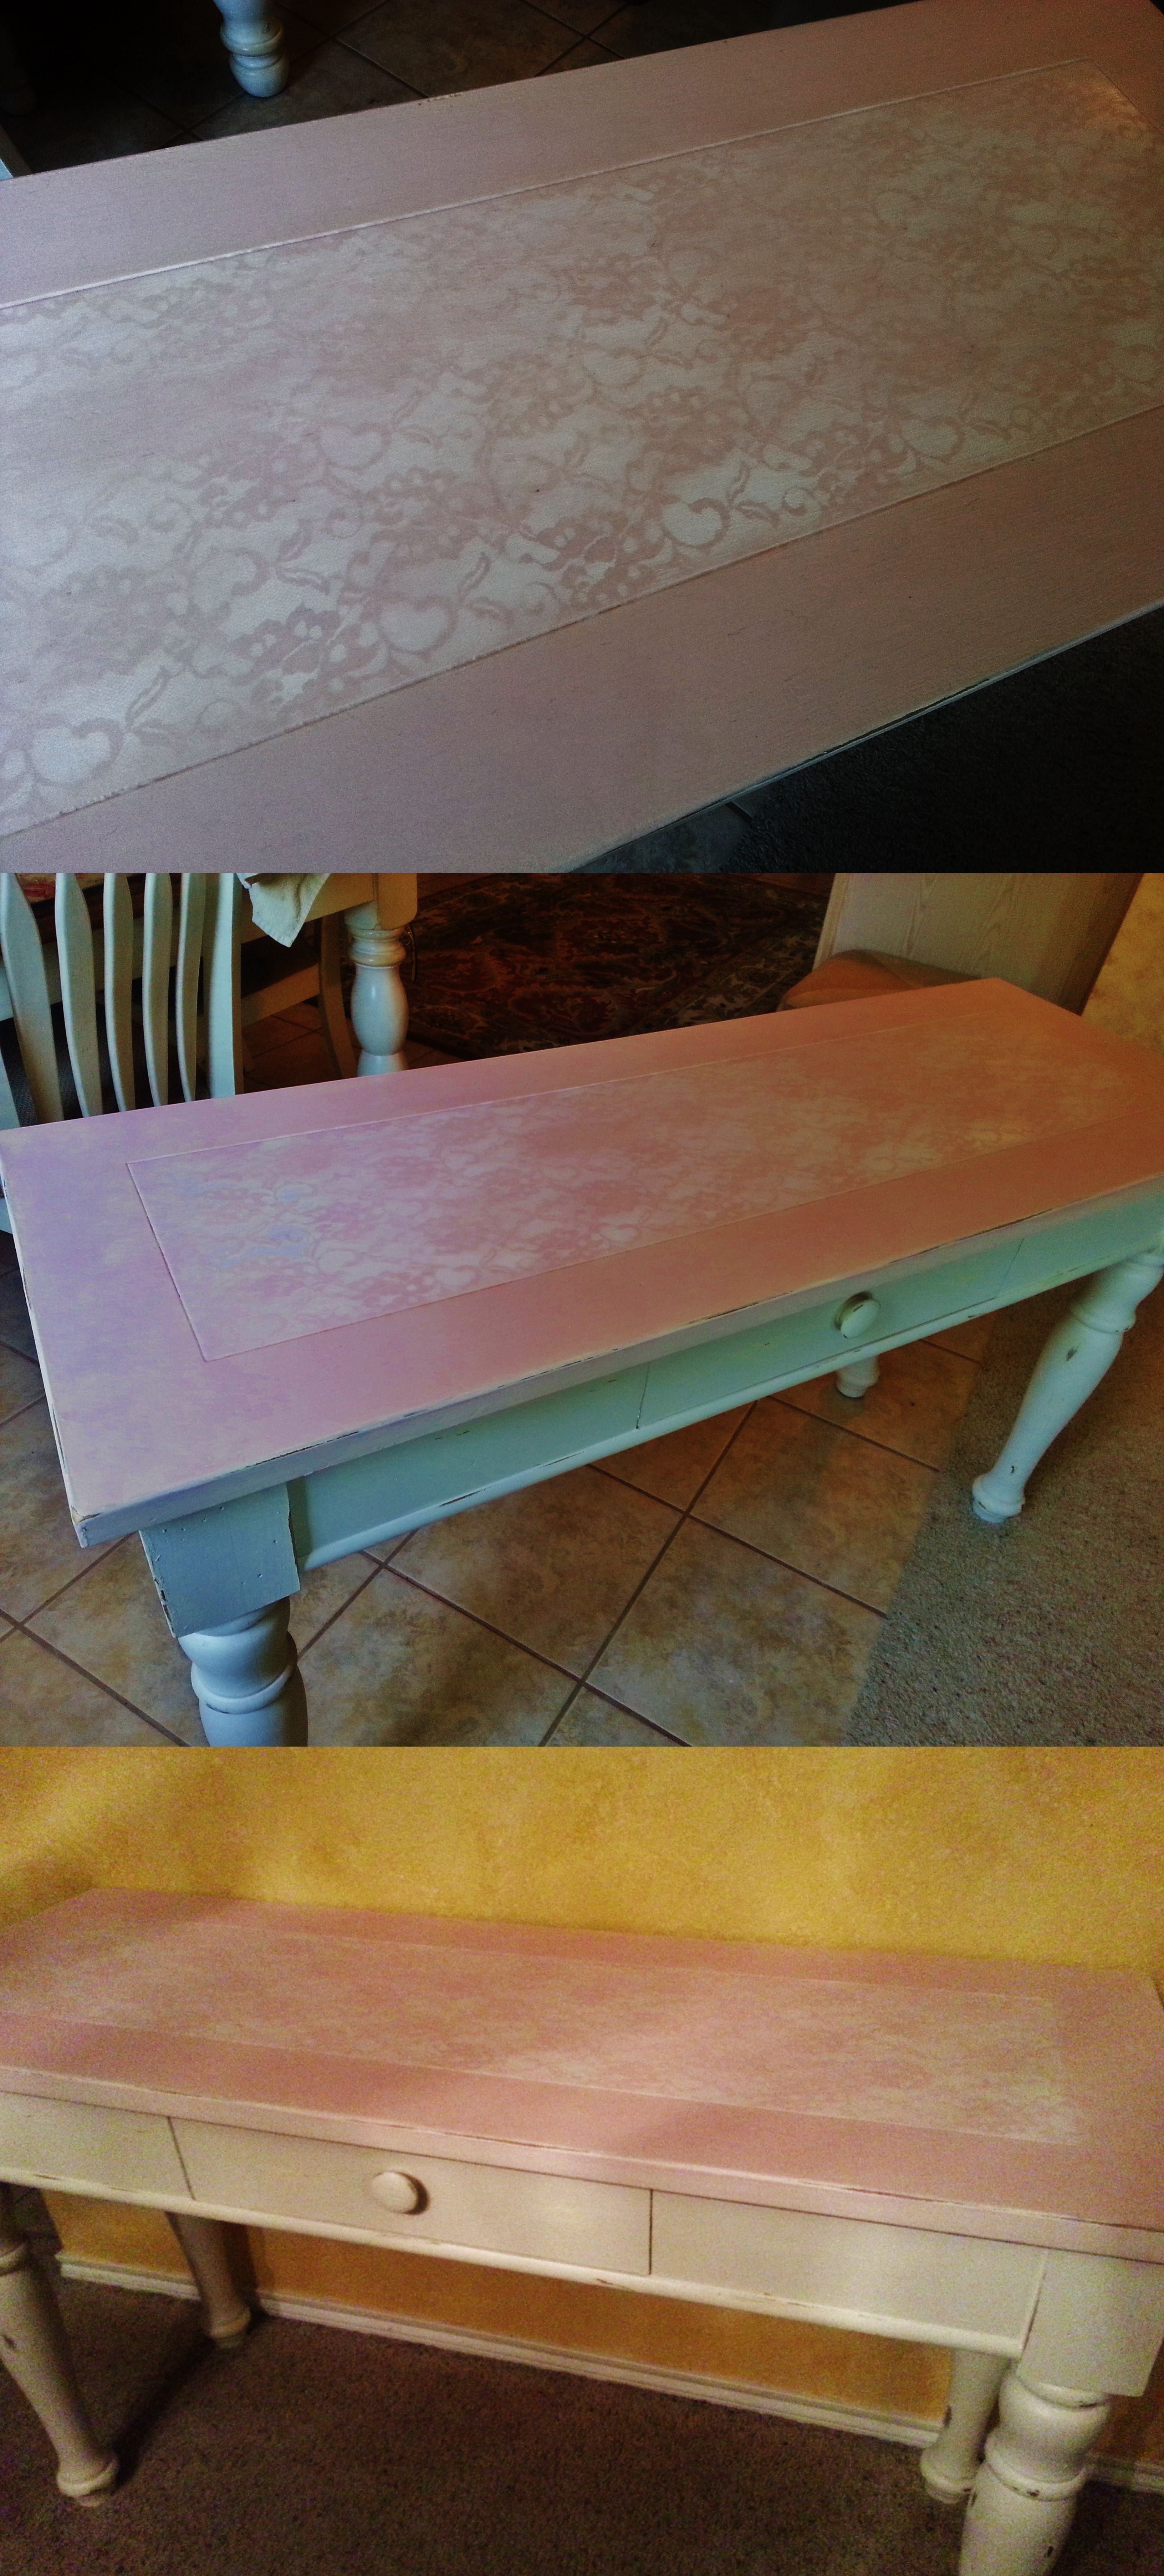 Broyhill Fontana Sofa Table Makeover With Diy Chalk Paint Lace And White Spray Paint Diy Chalk Paint Table Makeover White Spray Paint